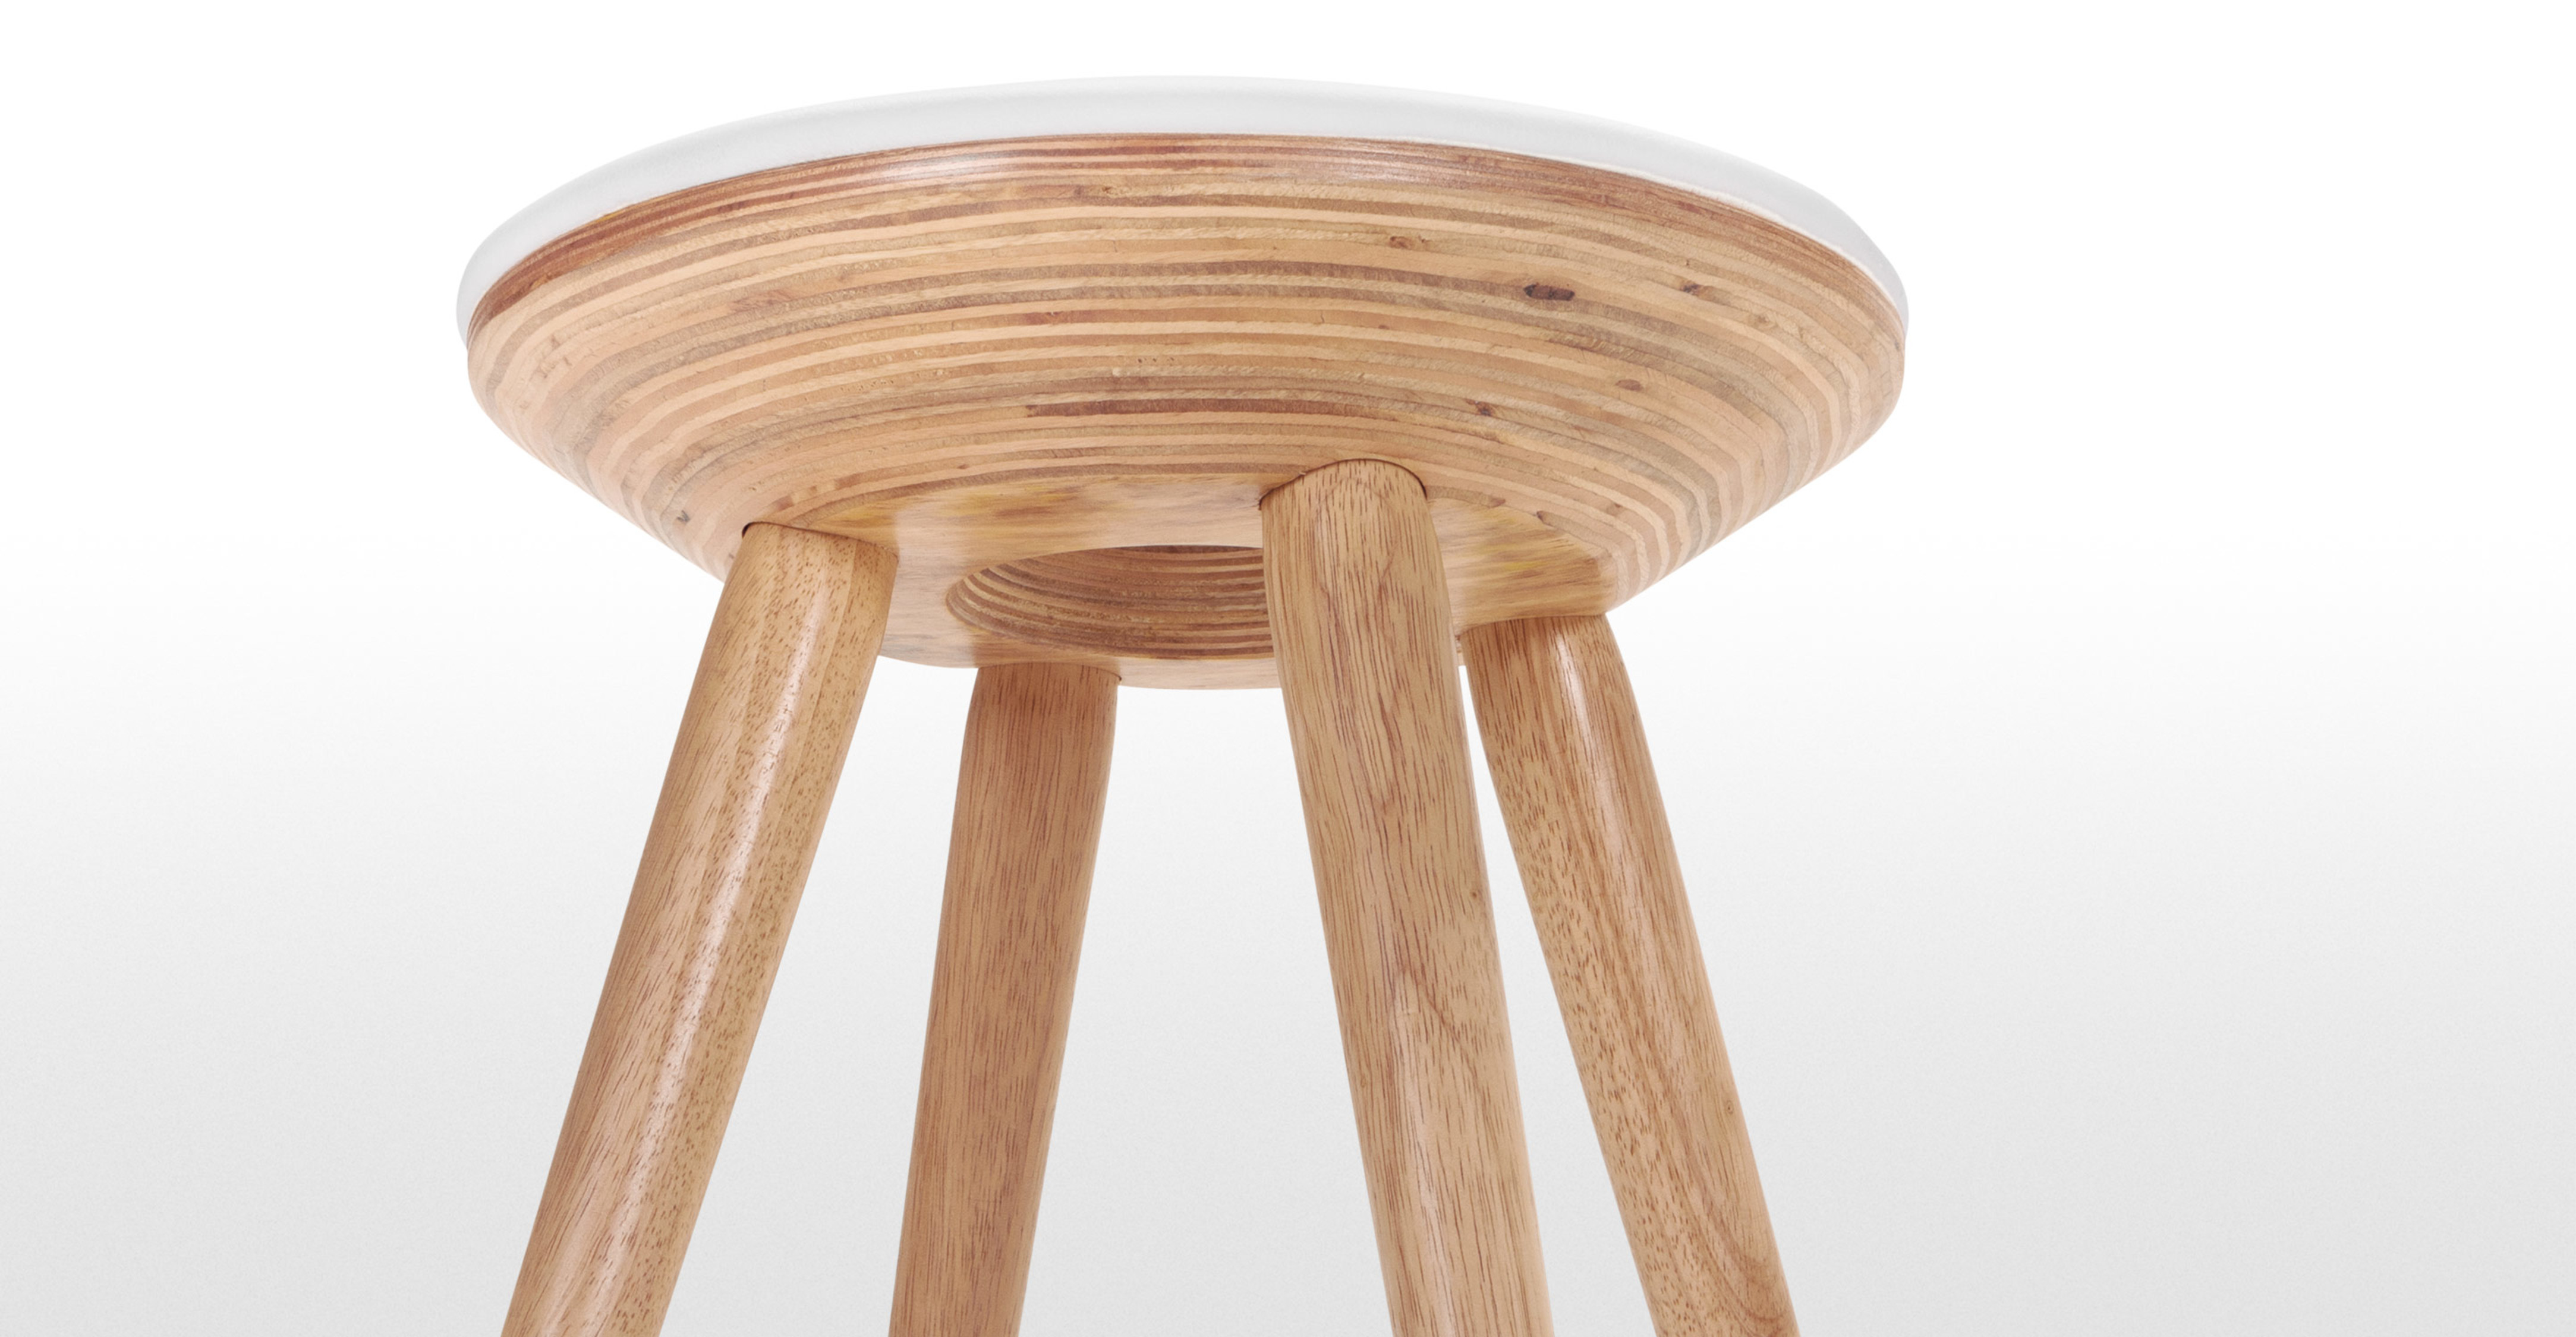 Pair Of Kitson Stools In Natural Wood And White